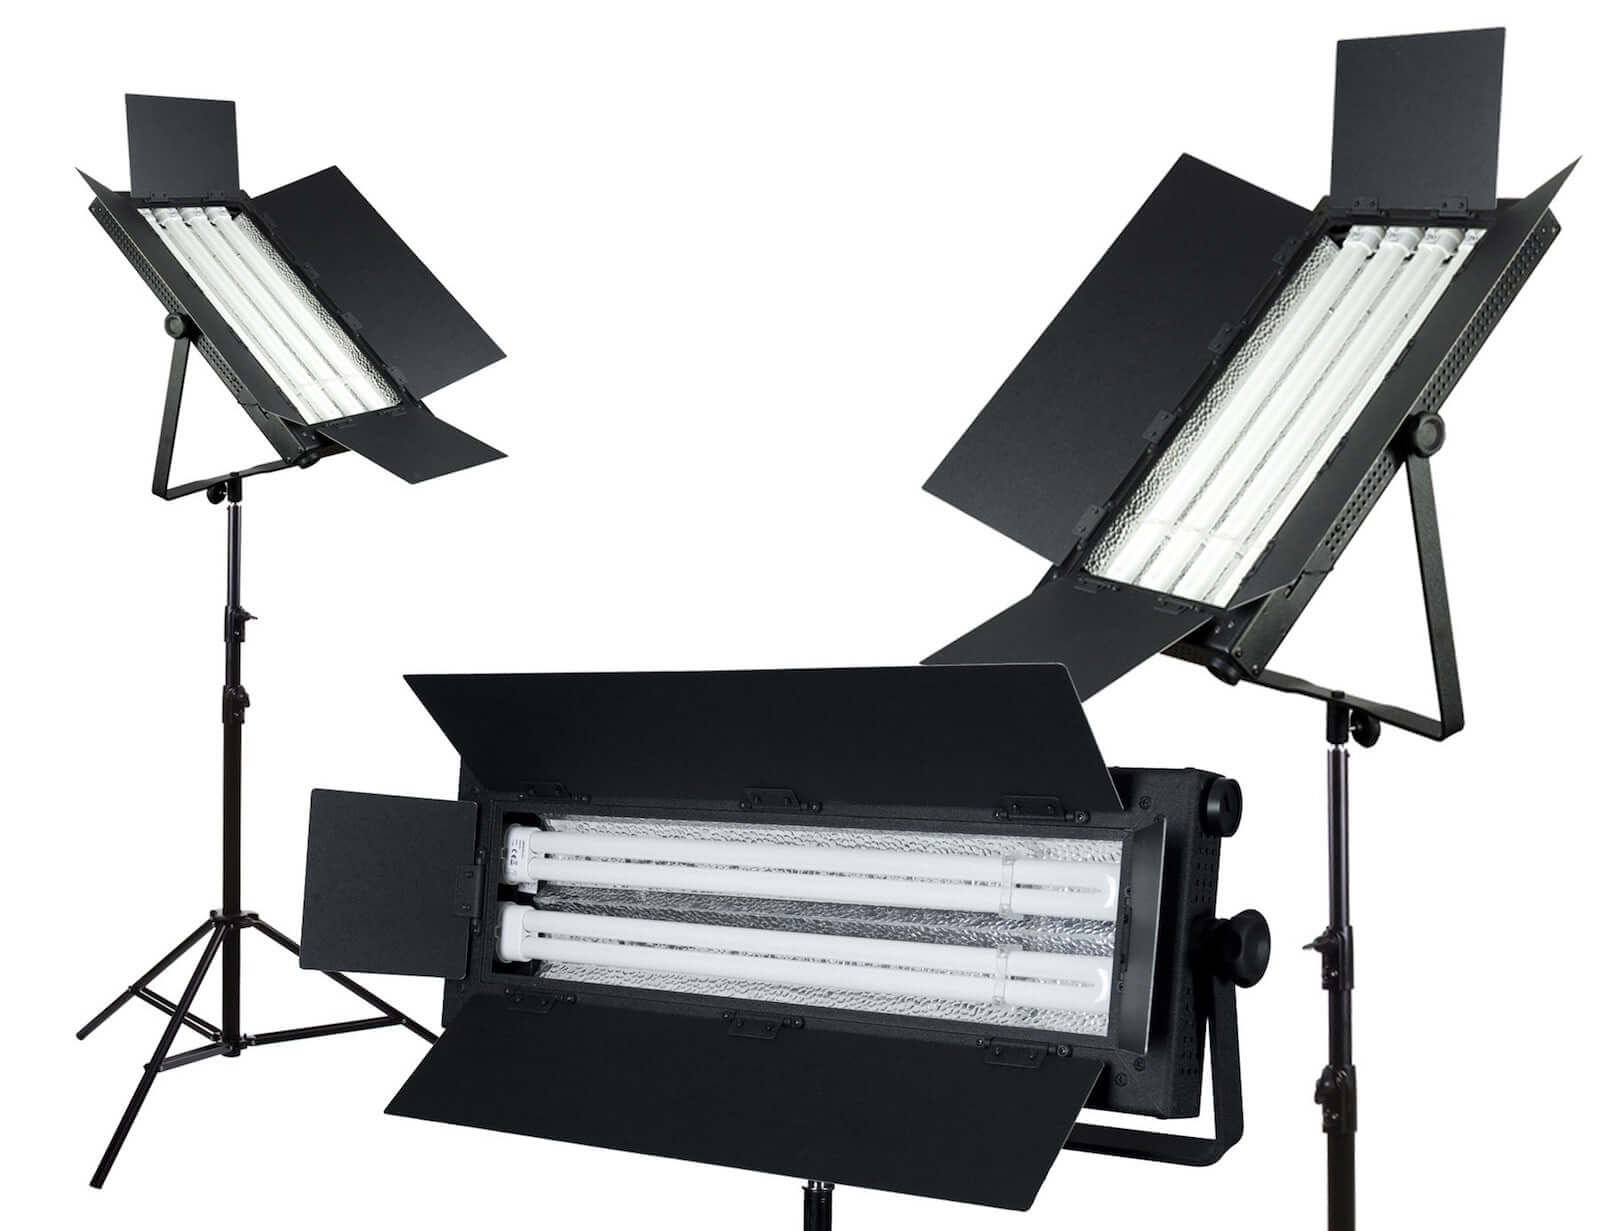 Best Video Lighting Kits - Production Lighting - Fluorescent Film Lights